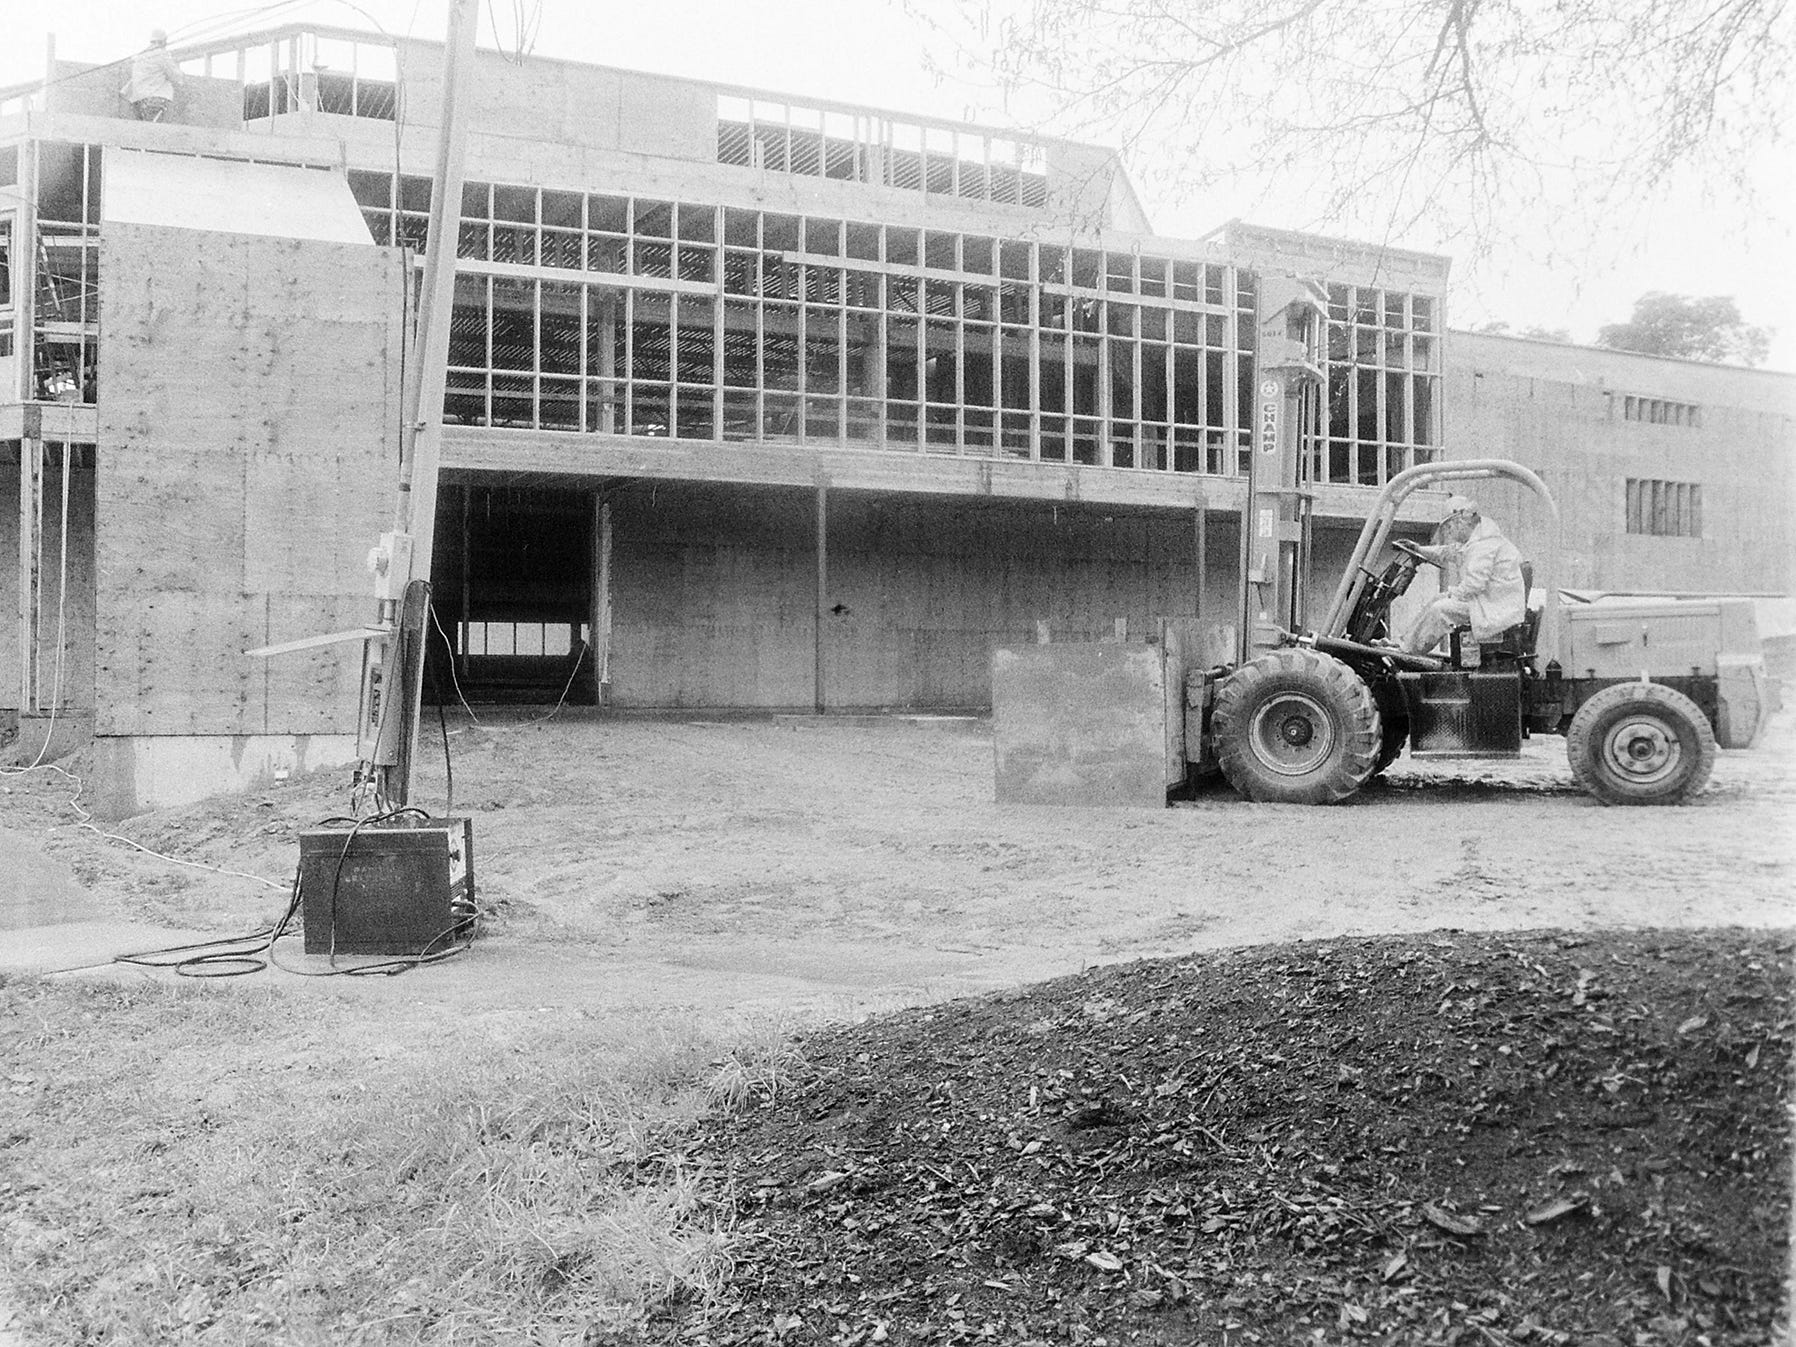 04/03/87